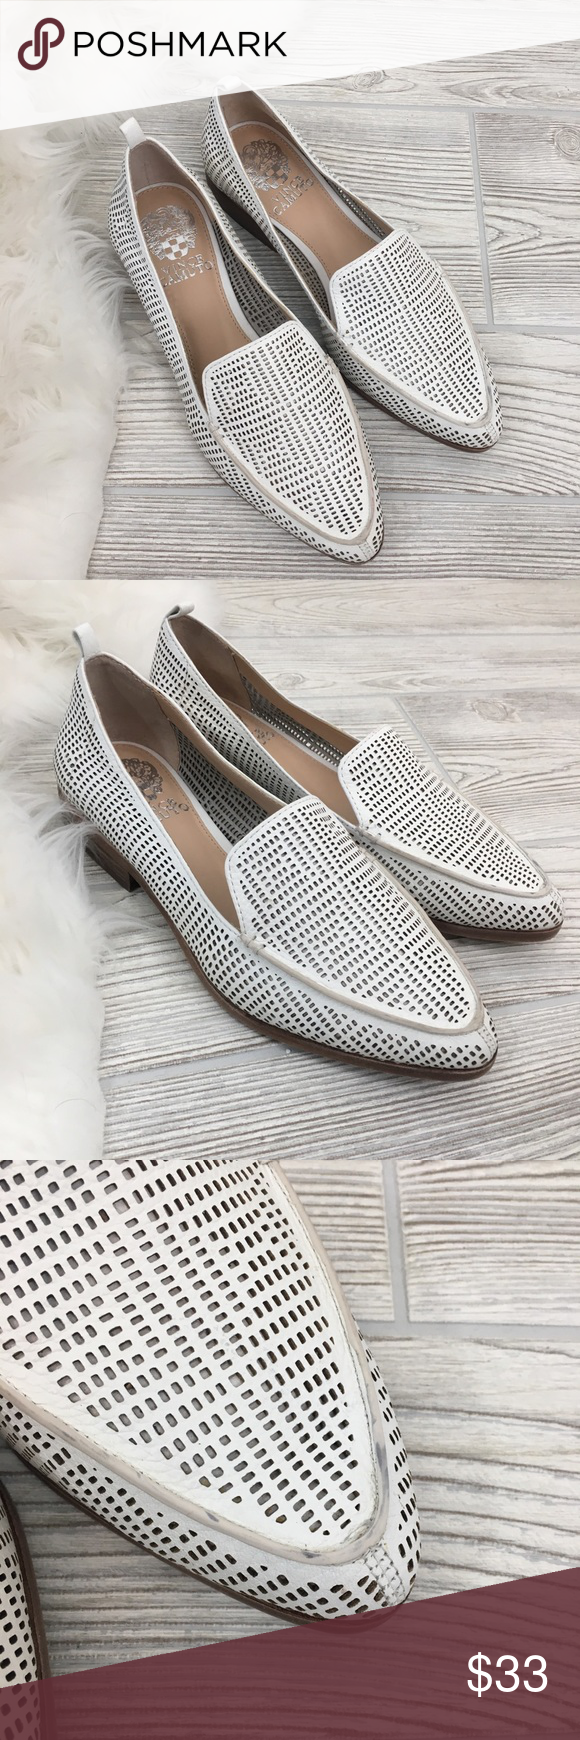 cd69f3662b5 Vince Camuto Kade Cut-Out Loafers Size 7. Vince Camuto Kade Cut-Out ...